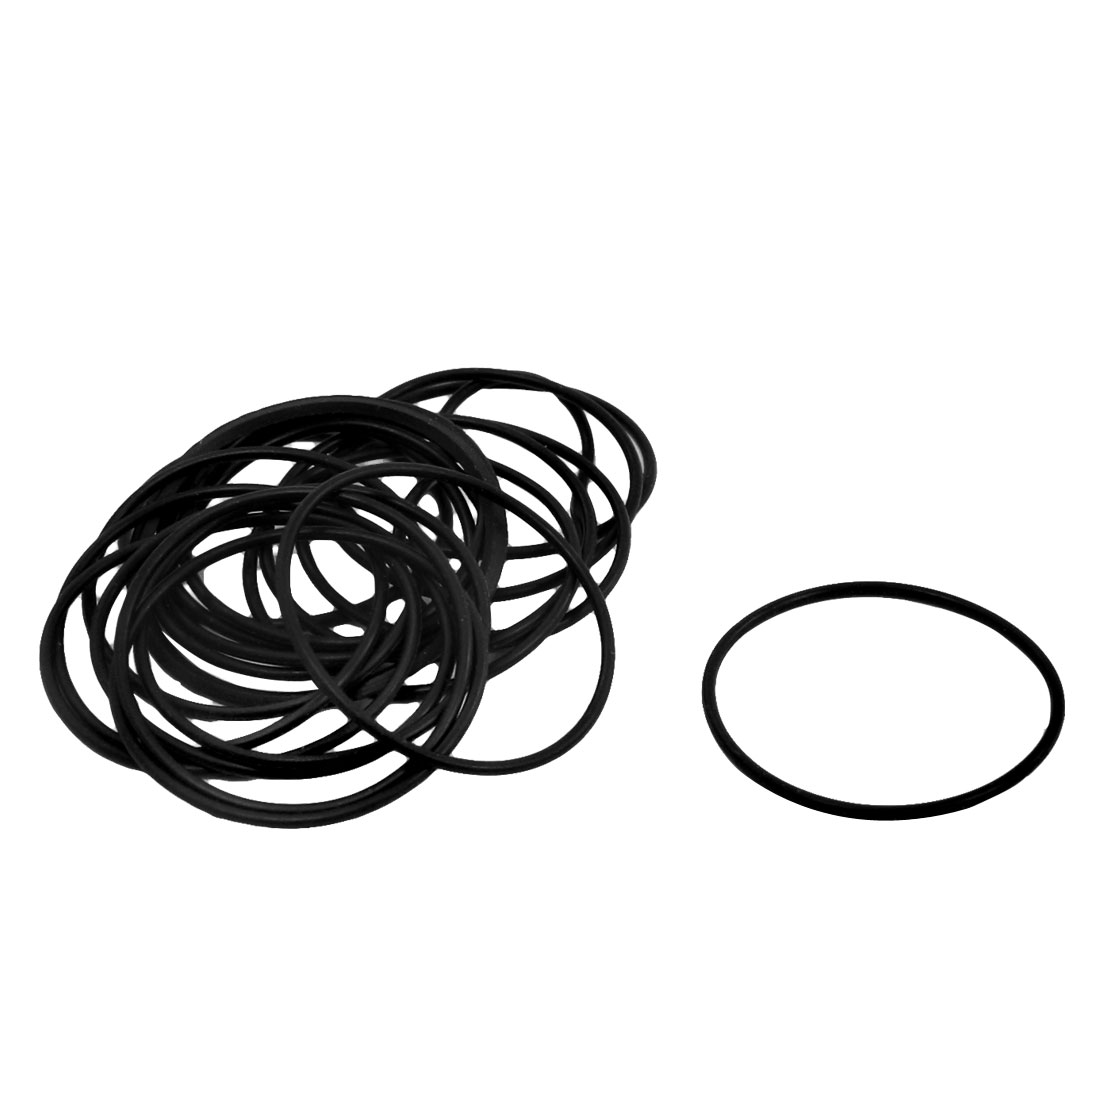 Uxcell 20 Pcs/lot 1mm Thickness Industrial Rubber O Rings Seals Id 24mm 25mm 26mm 27mm 28mm 30mm